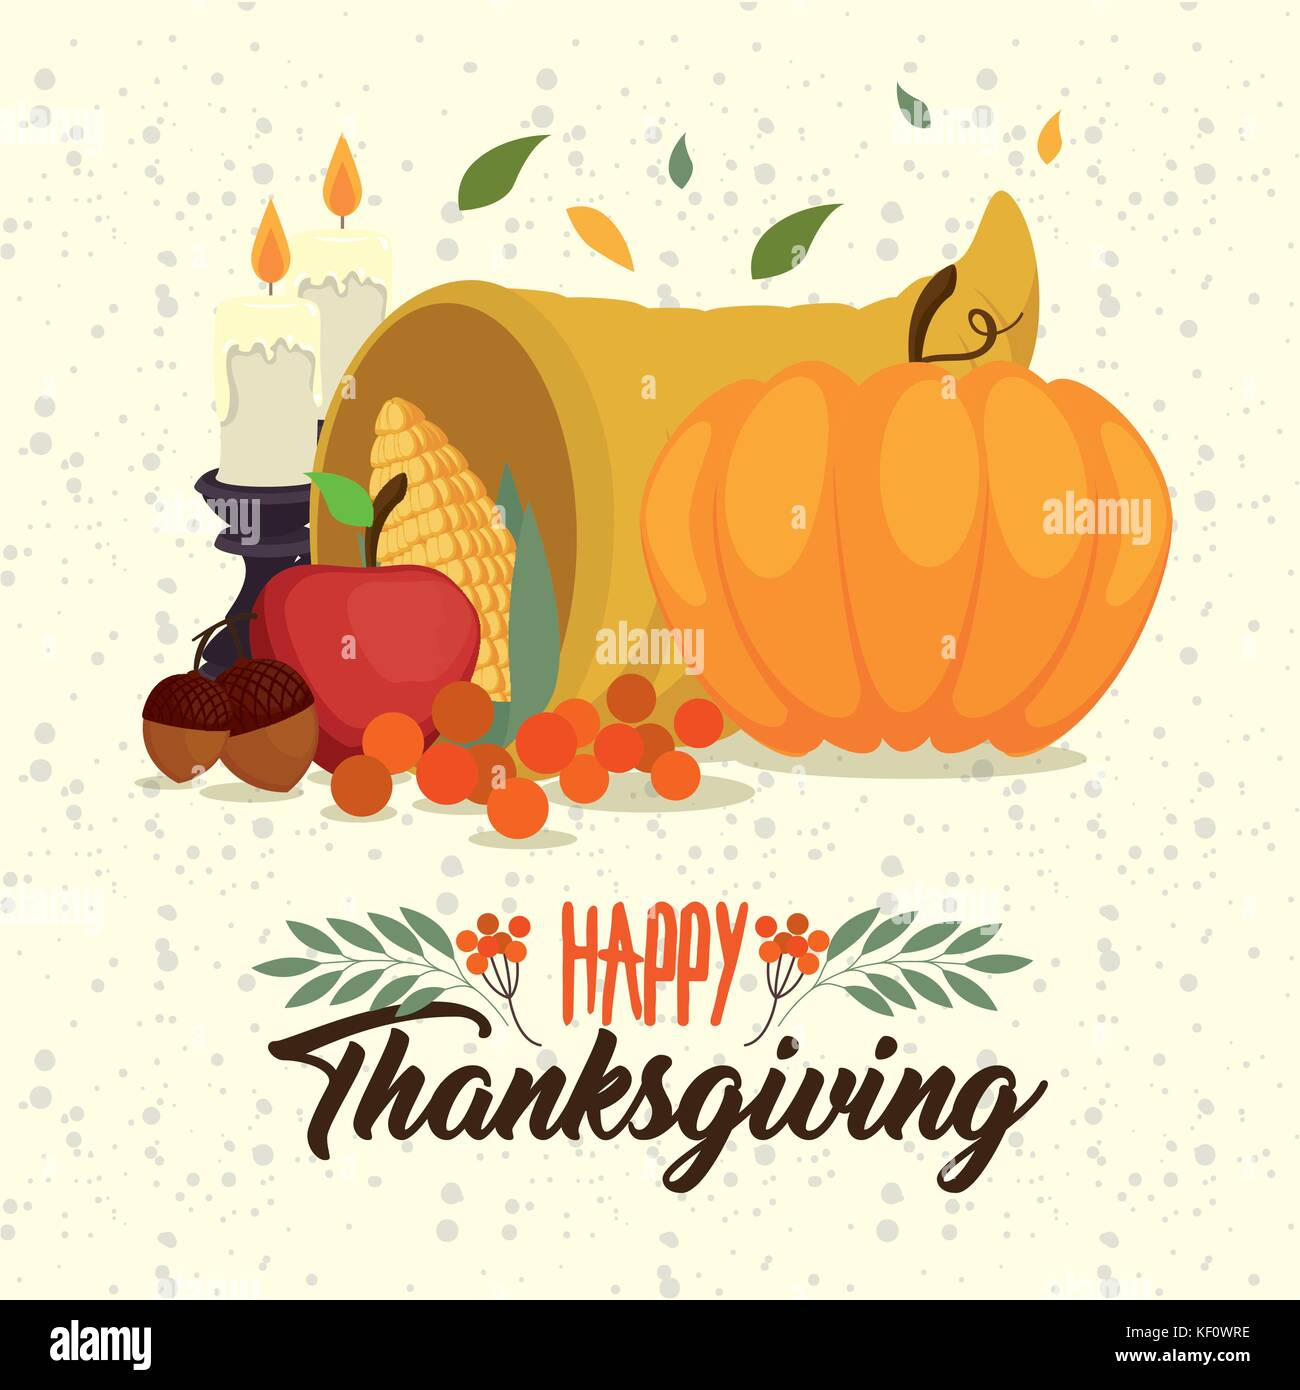 Happy thanksgiving day greeting card vector illustration graphic happy thanksgiving day greeting card vector illustration graphic design m4hsunfo